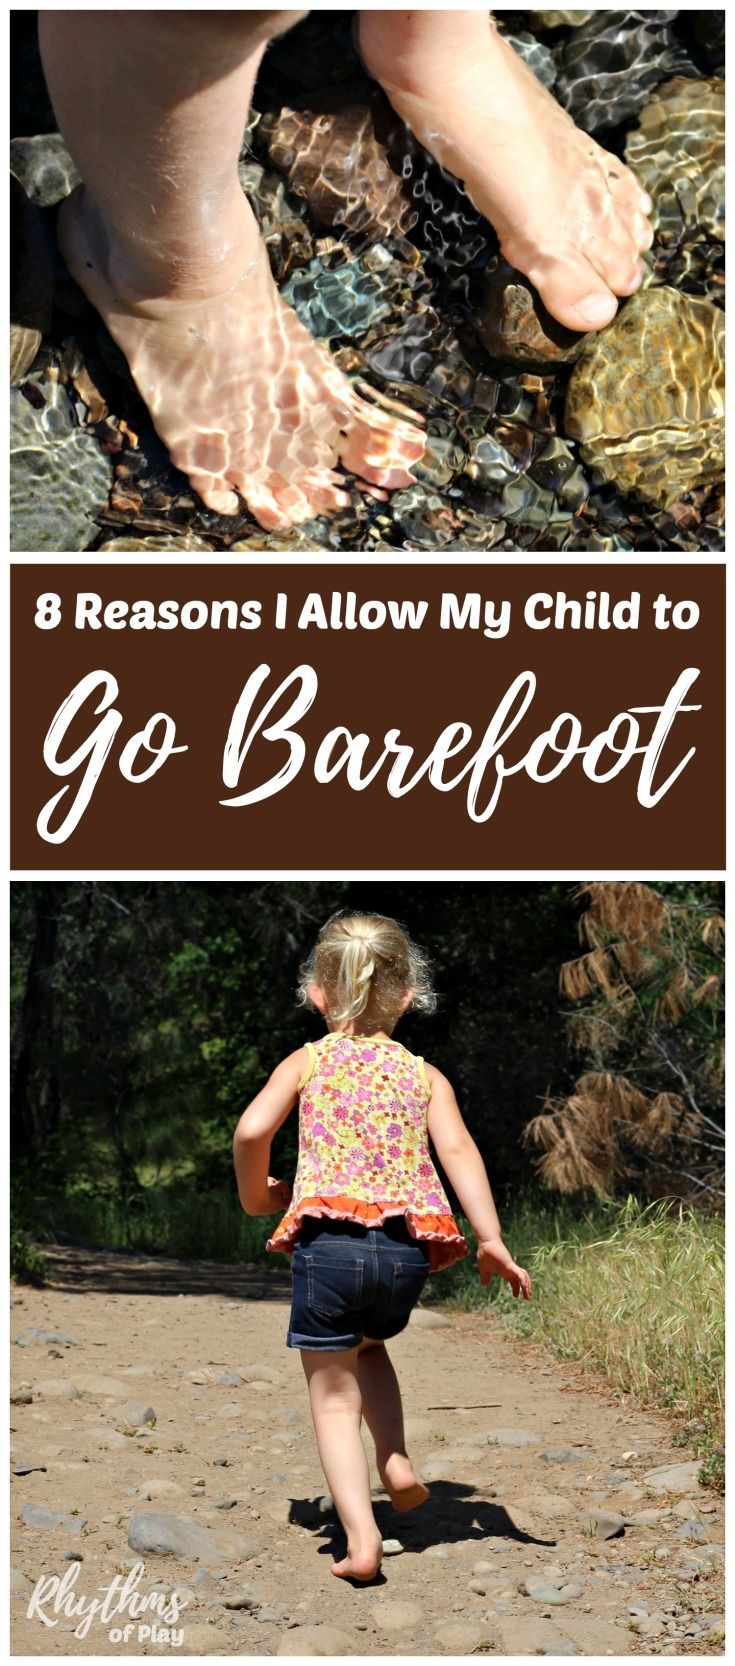 Barefoot health benefits for kids - The feet and sensory systems can develop properly when a child is allowed to go barefoot. Click through to find out all of the other amazing health and safety benefits of going barefoot while playing outside!